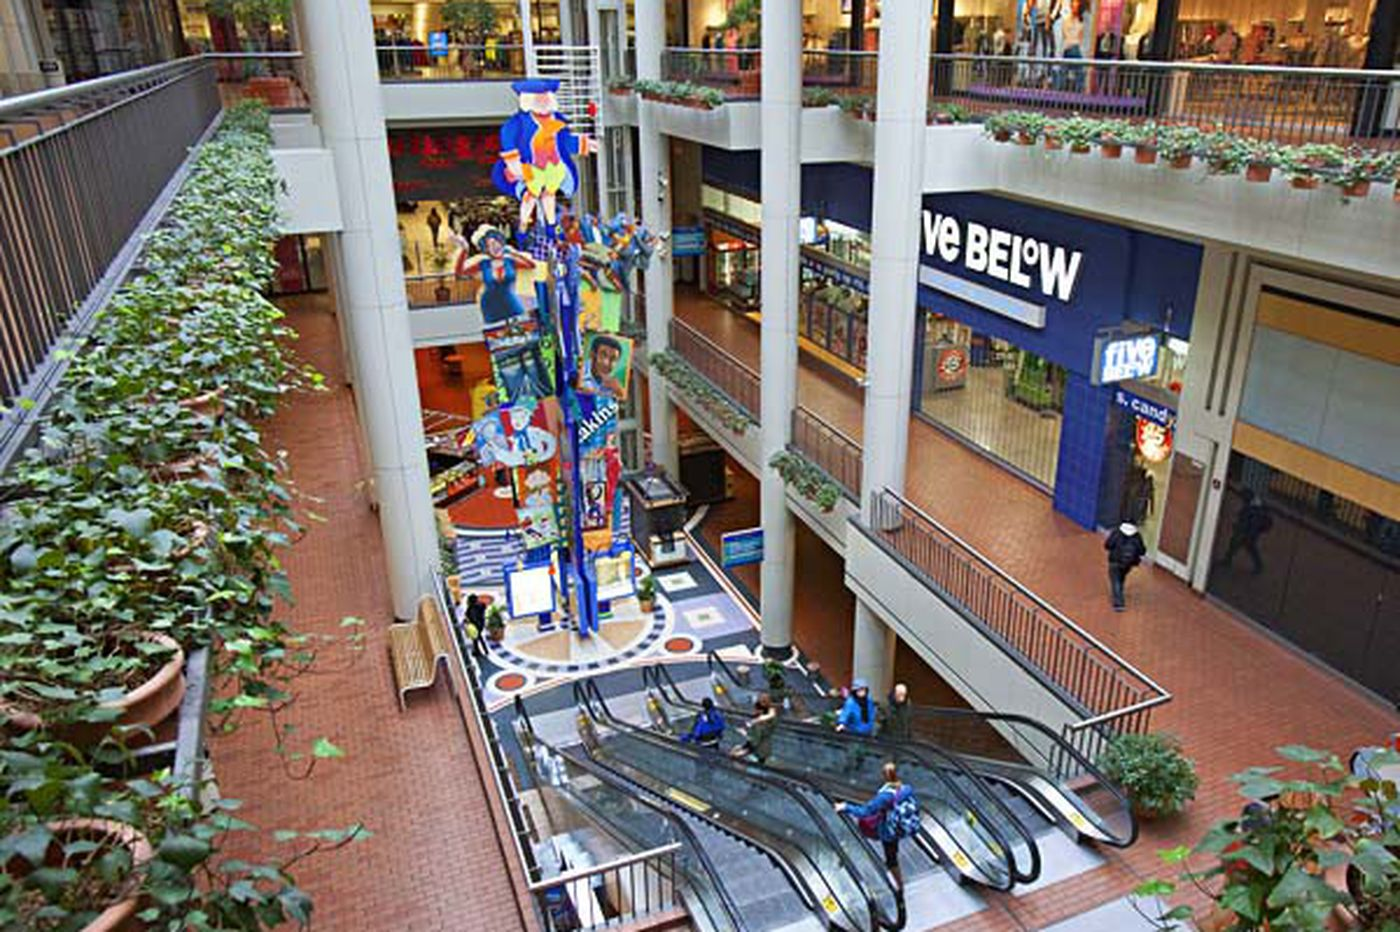 Mall developer Macerich Co. to invest $106.8M in Gallery revival effort